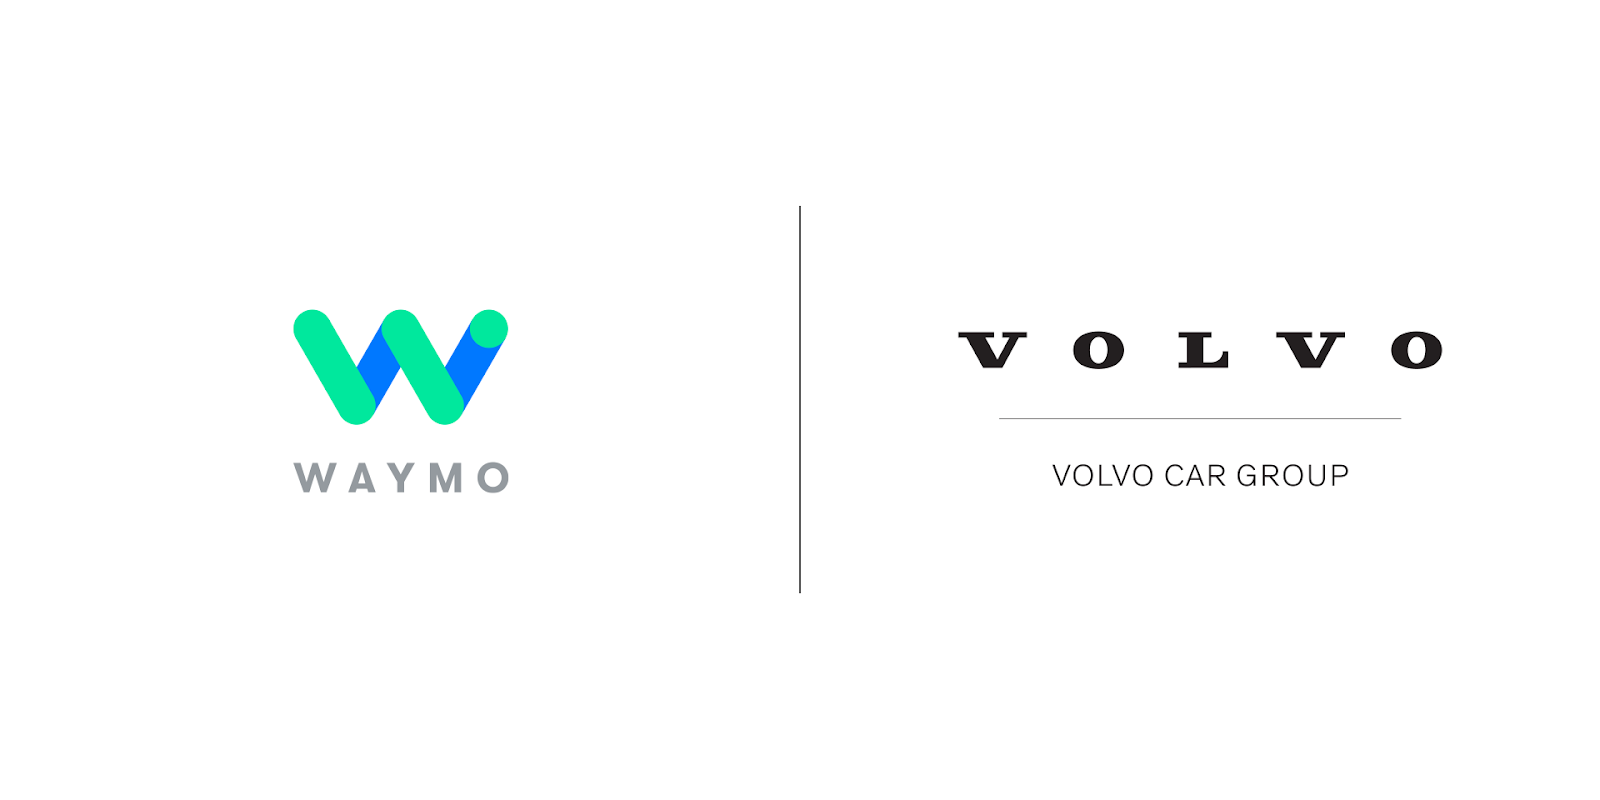 Besides operating a ride-hailing service, Waymo is offering its self-driving technology to carmakers. The latest deal sees Waymo partner with the Volv